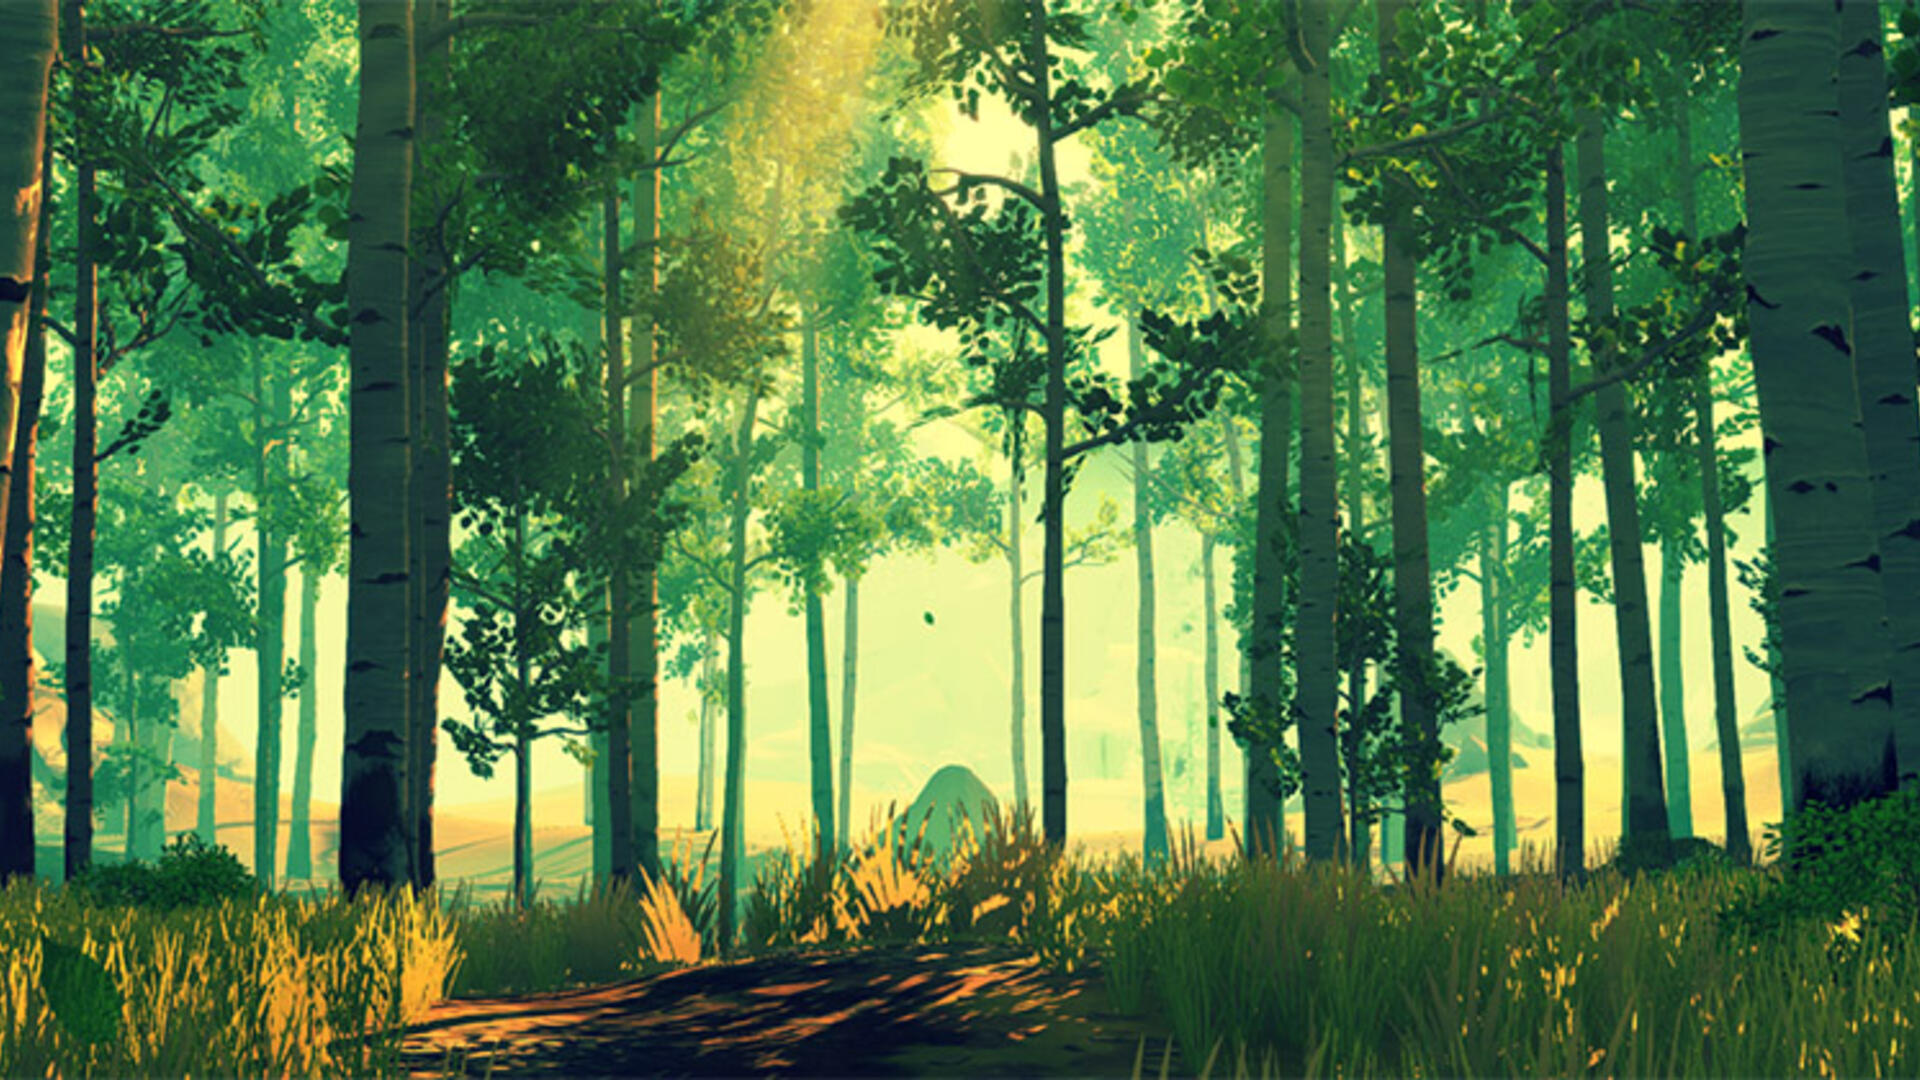 Firewatch PlayStation 4 Review: Into the Woods